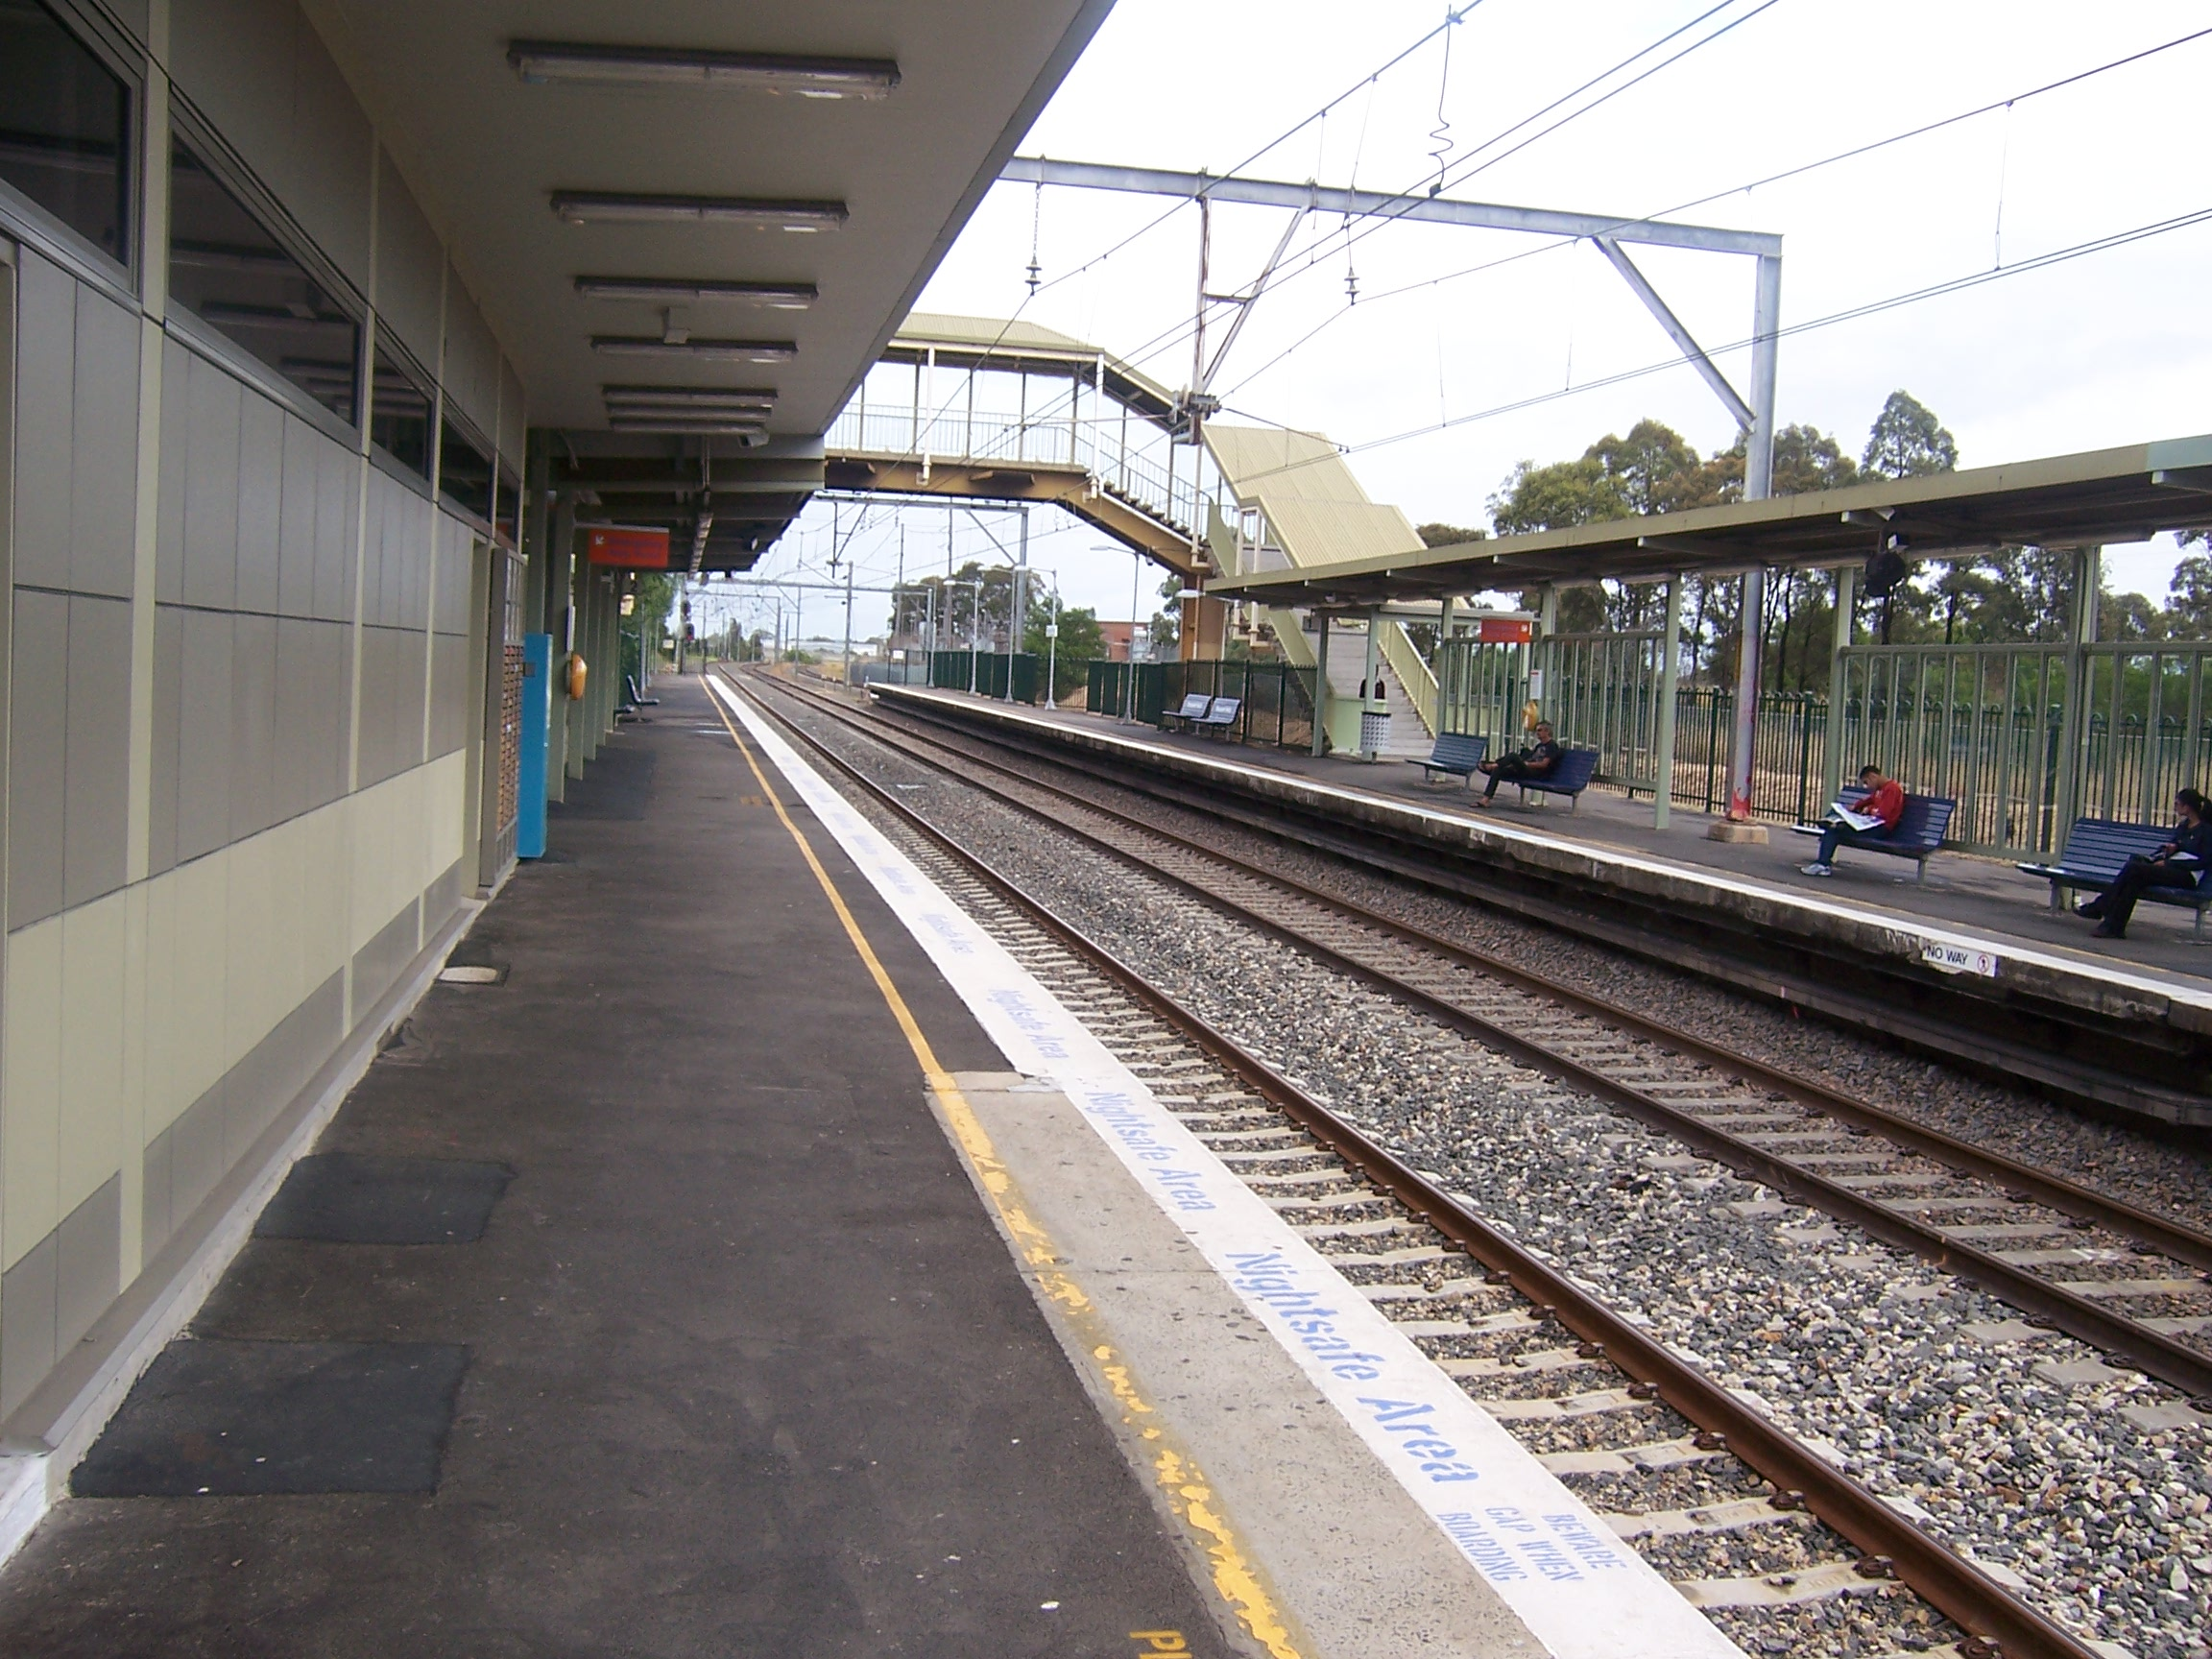 https://upload.wikimedia.org/wikipedia/commons/8/88/Macquarie_Fields_Station_3.jpg